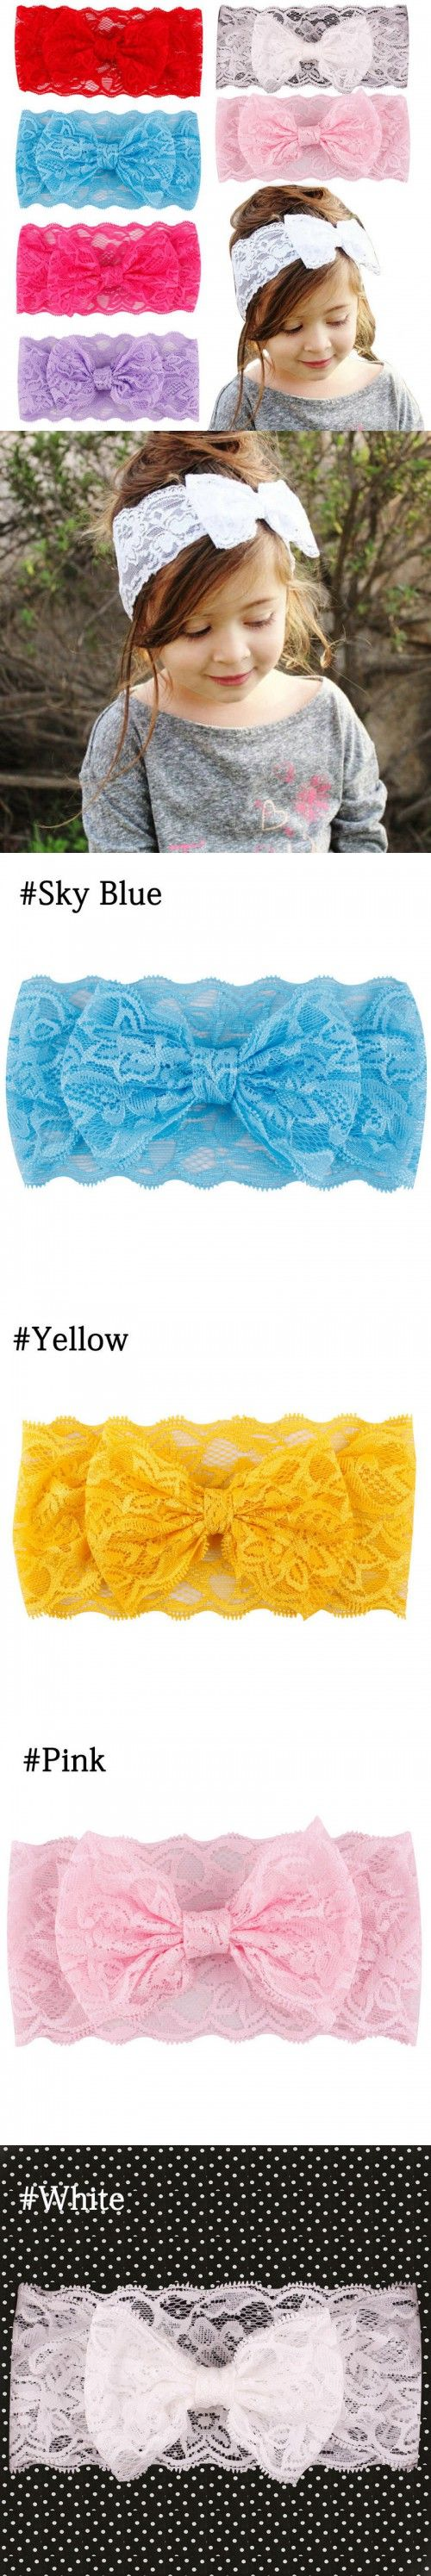 Random Color 7PCS Kids Girl Baby Headband Toddler Lace Bow Flower Hair Band Accessories $3.38